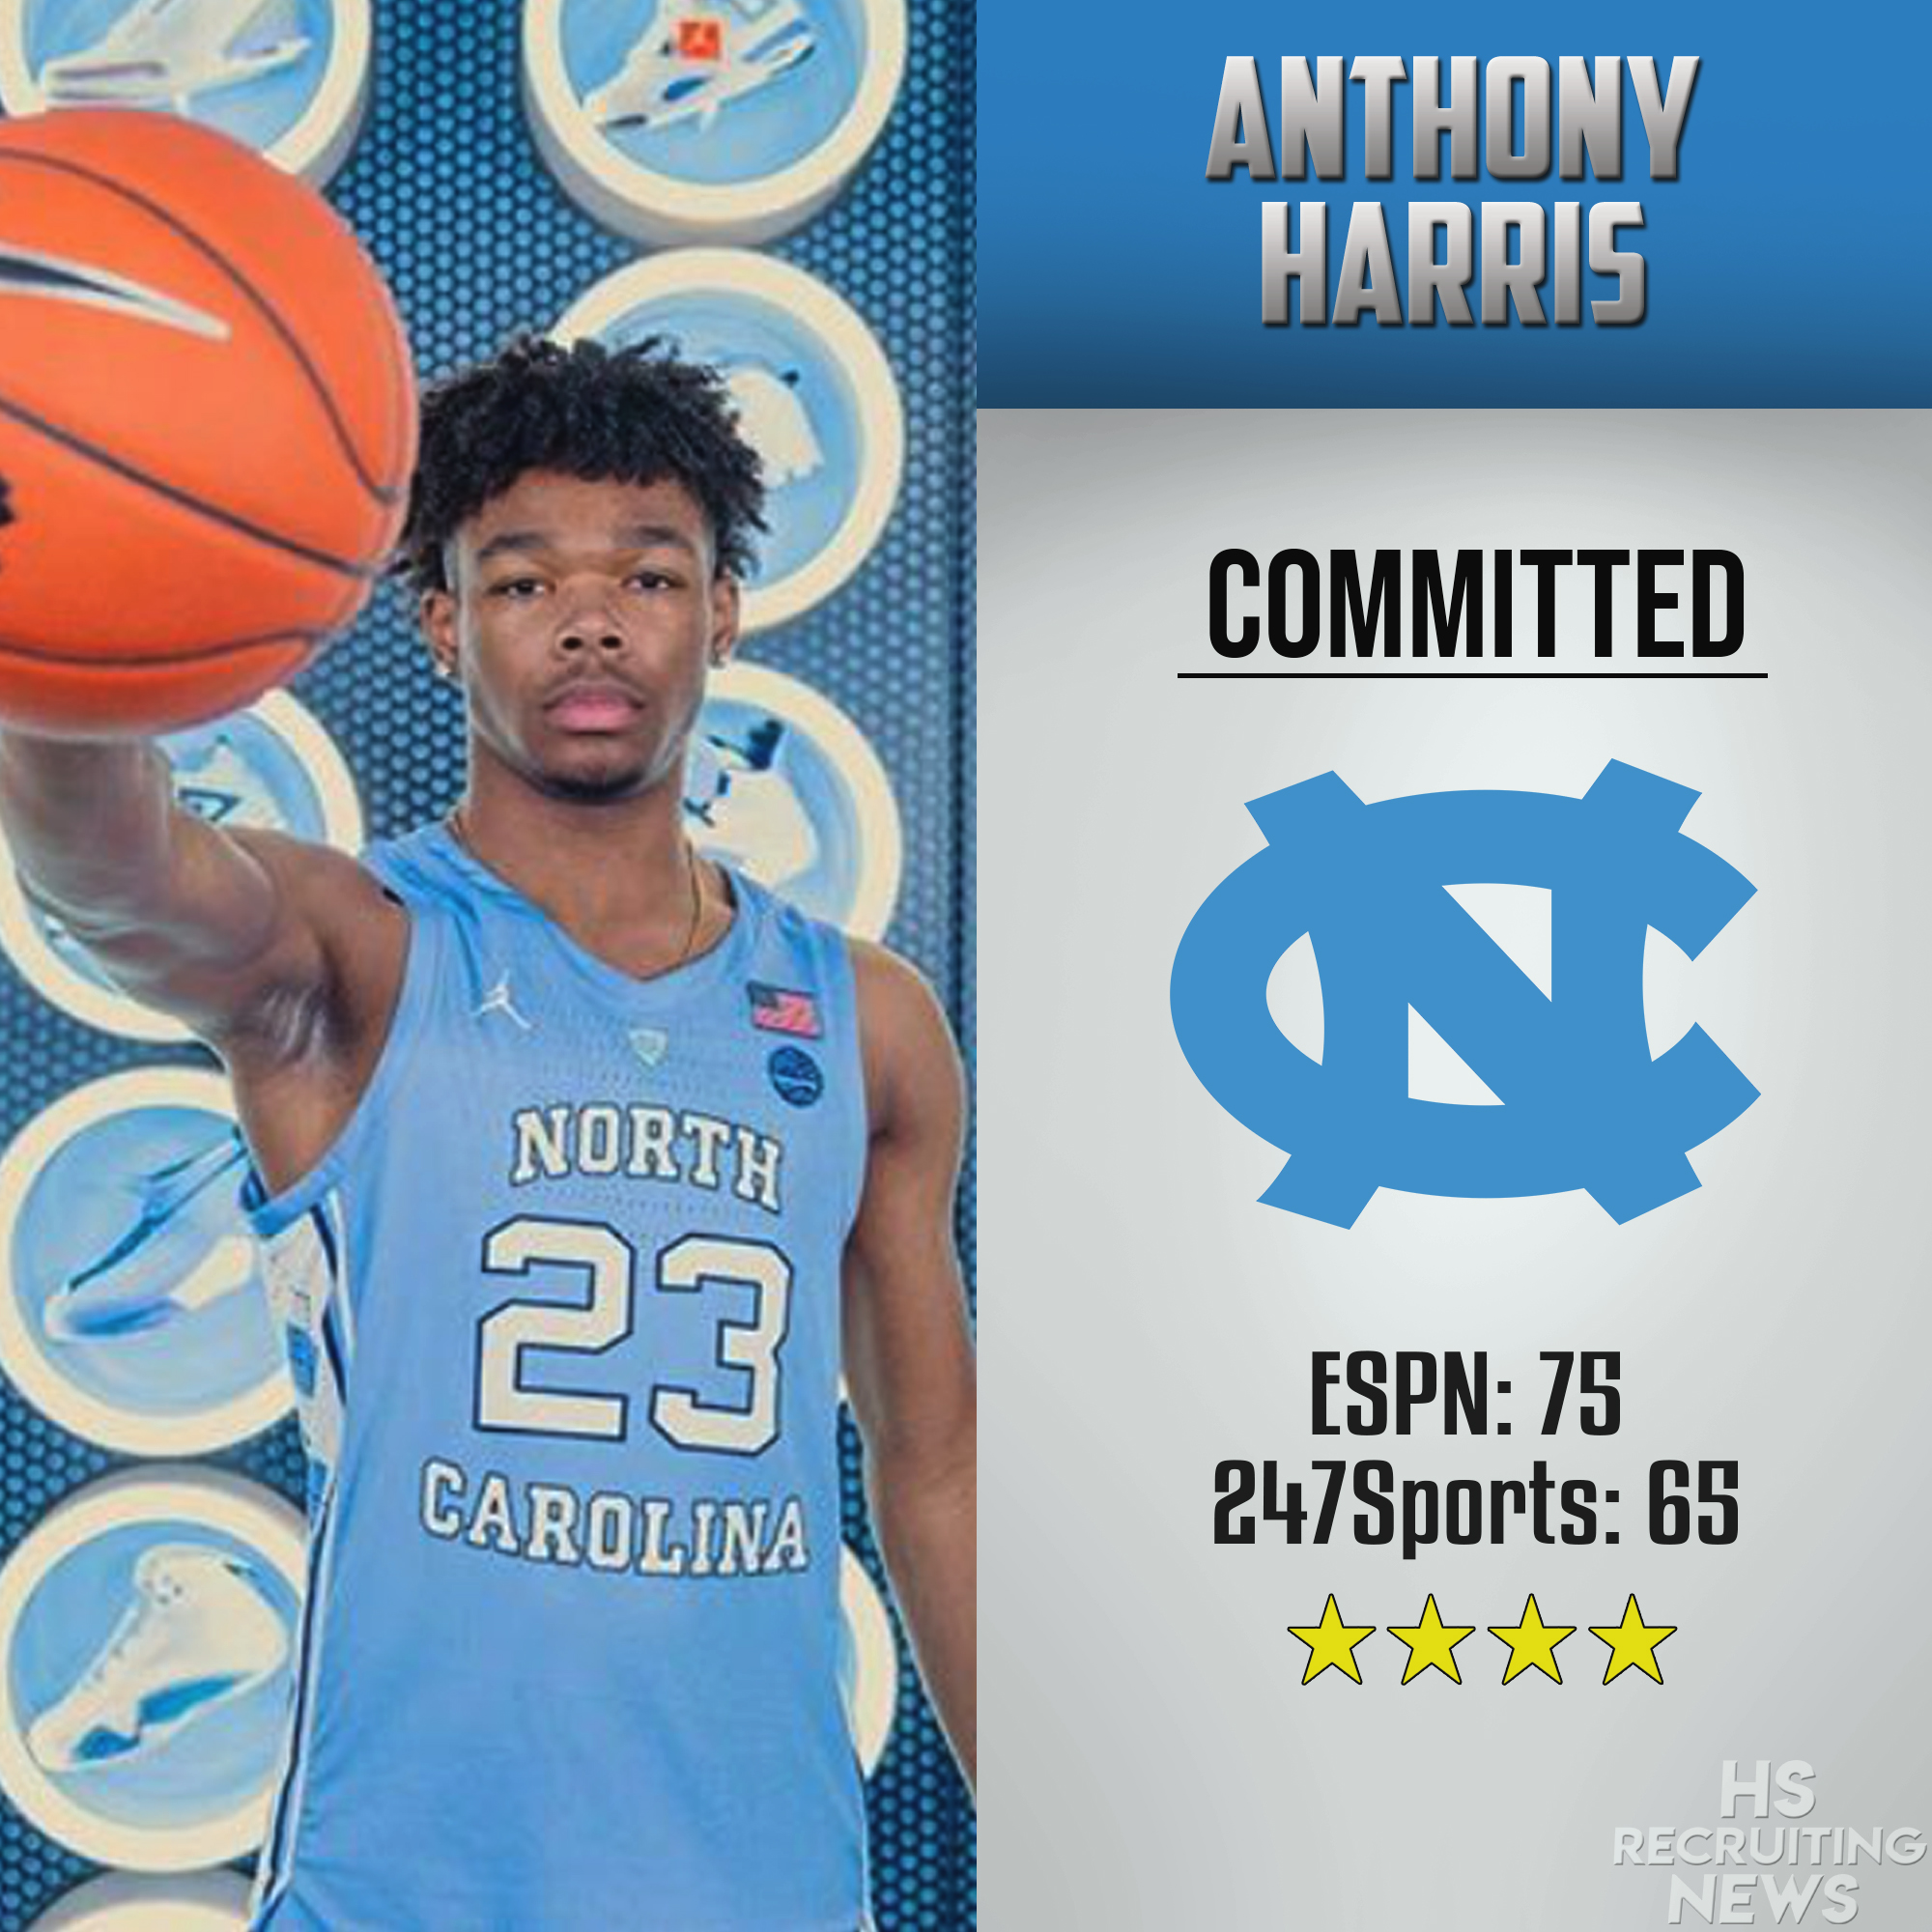 info for 6be48 74b7a Anthony Harris commits to UNC – HS Recruiting News